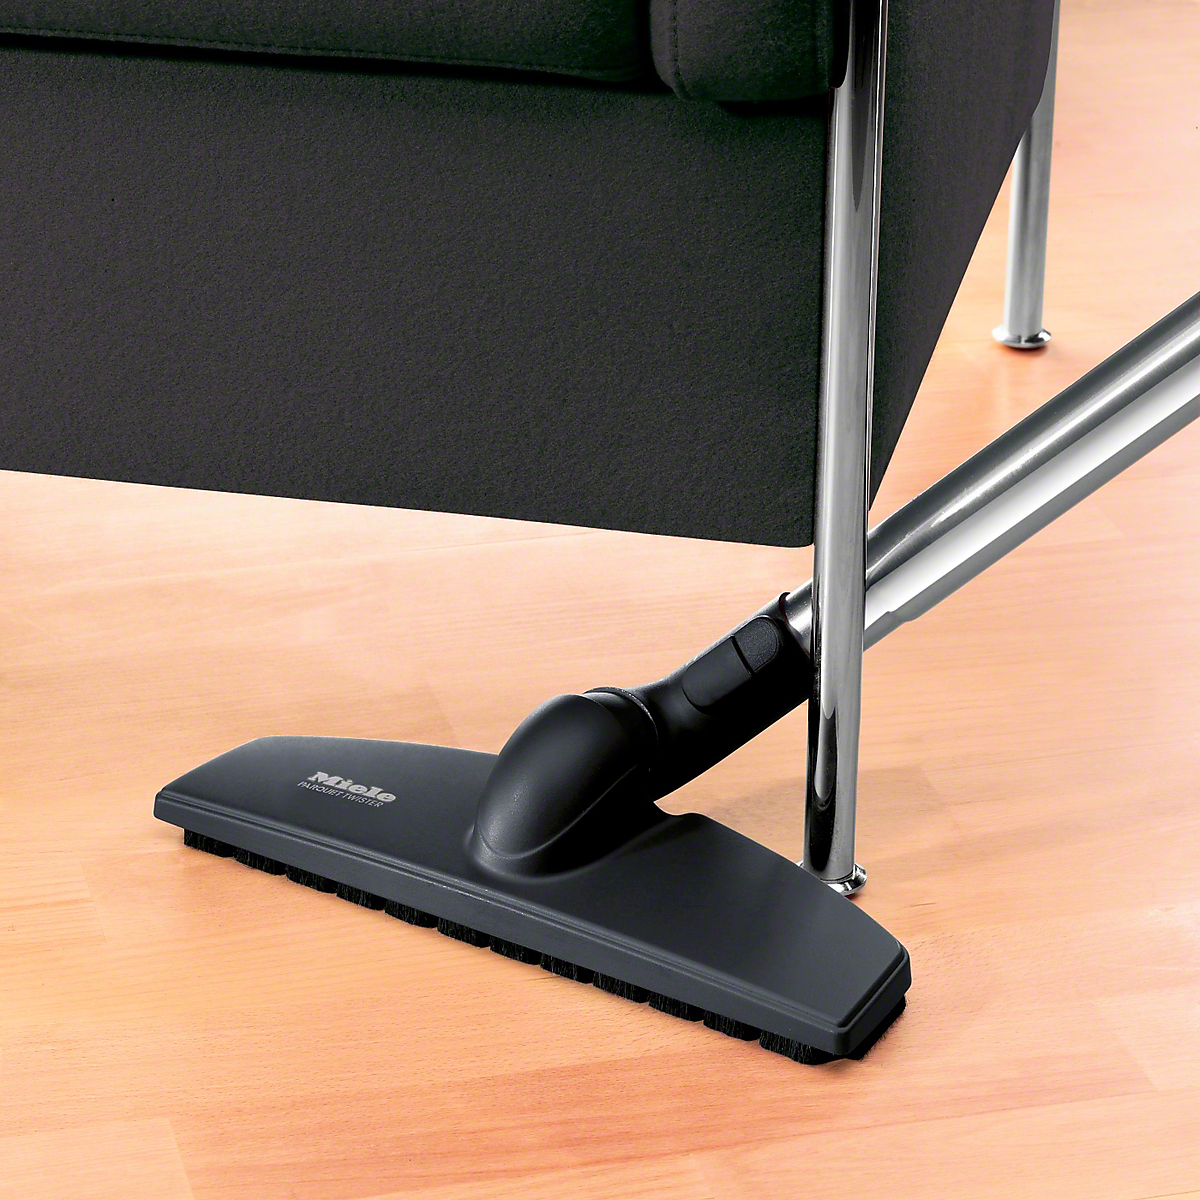 Model: SBB 300-3 PQ Twister | SwivelNeck parquet floorheadfor gentle and effortless cleaning of sensitive hard floors.